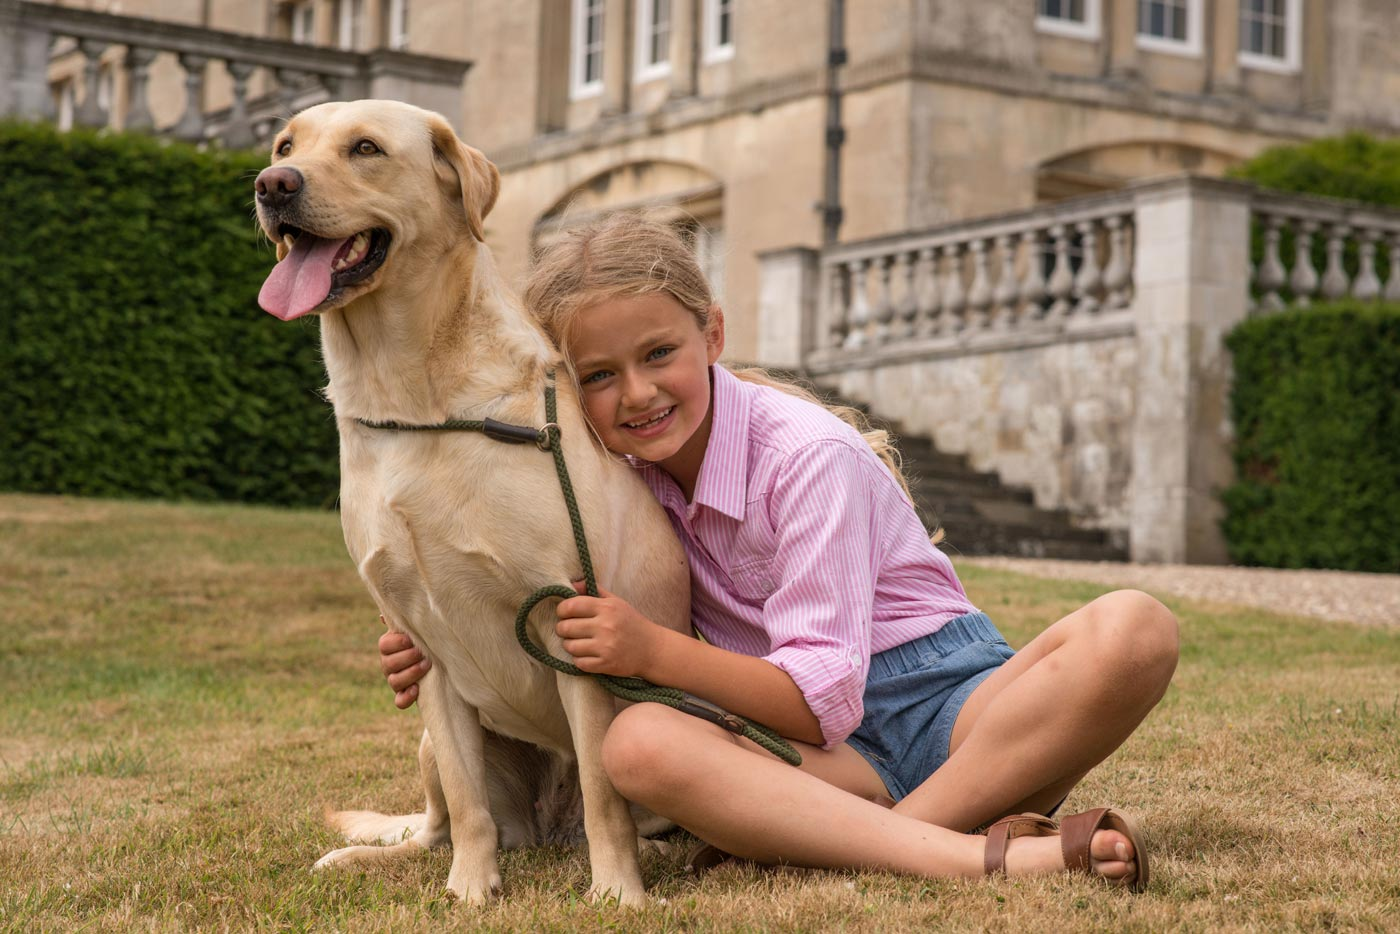 Dogs are welcome at Sledmere House in East Yorkshire